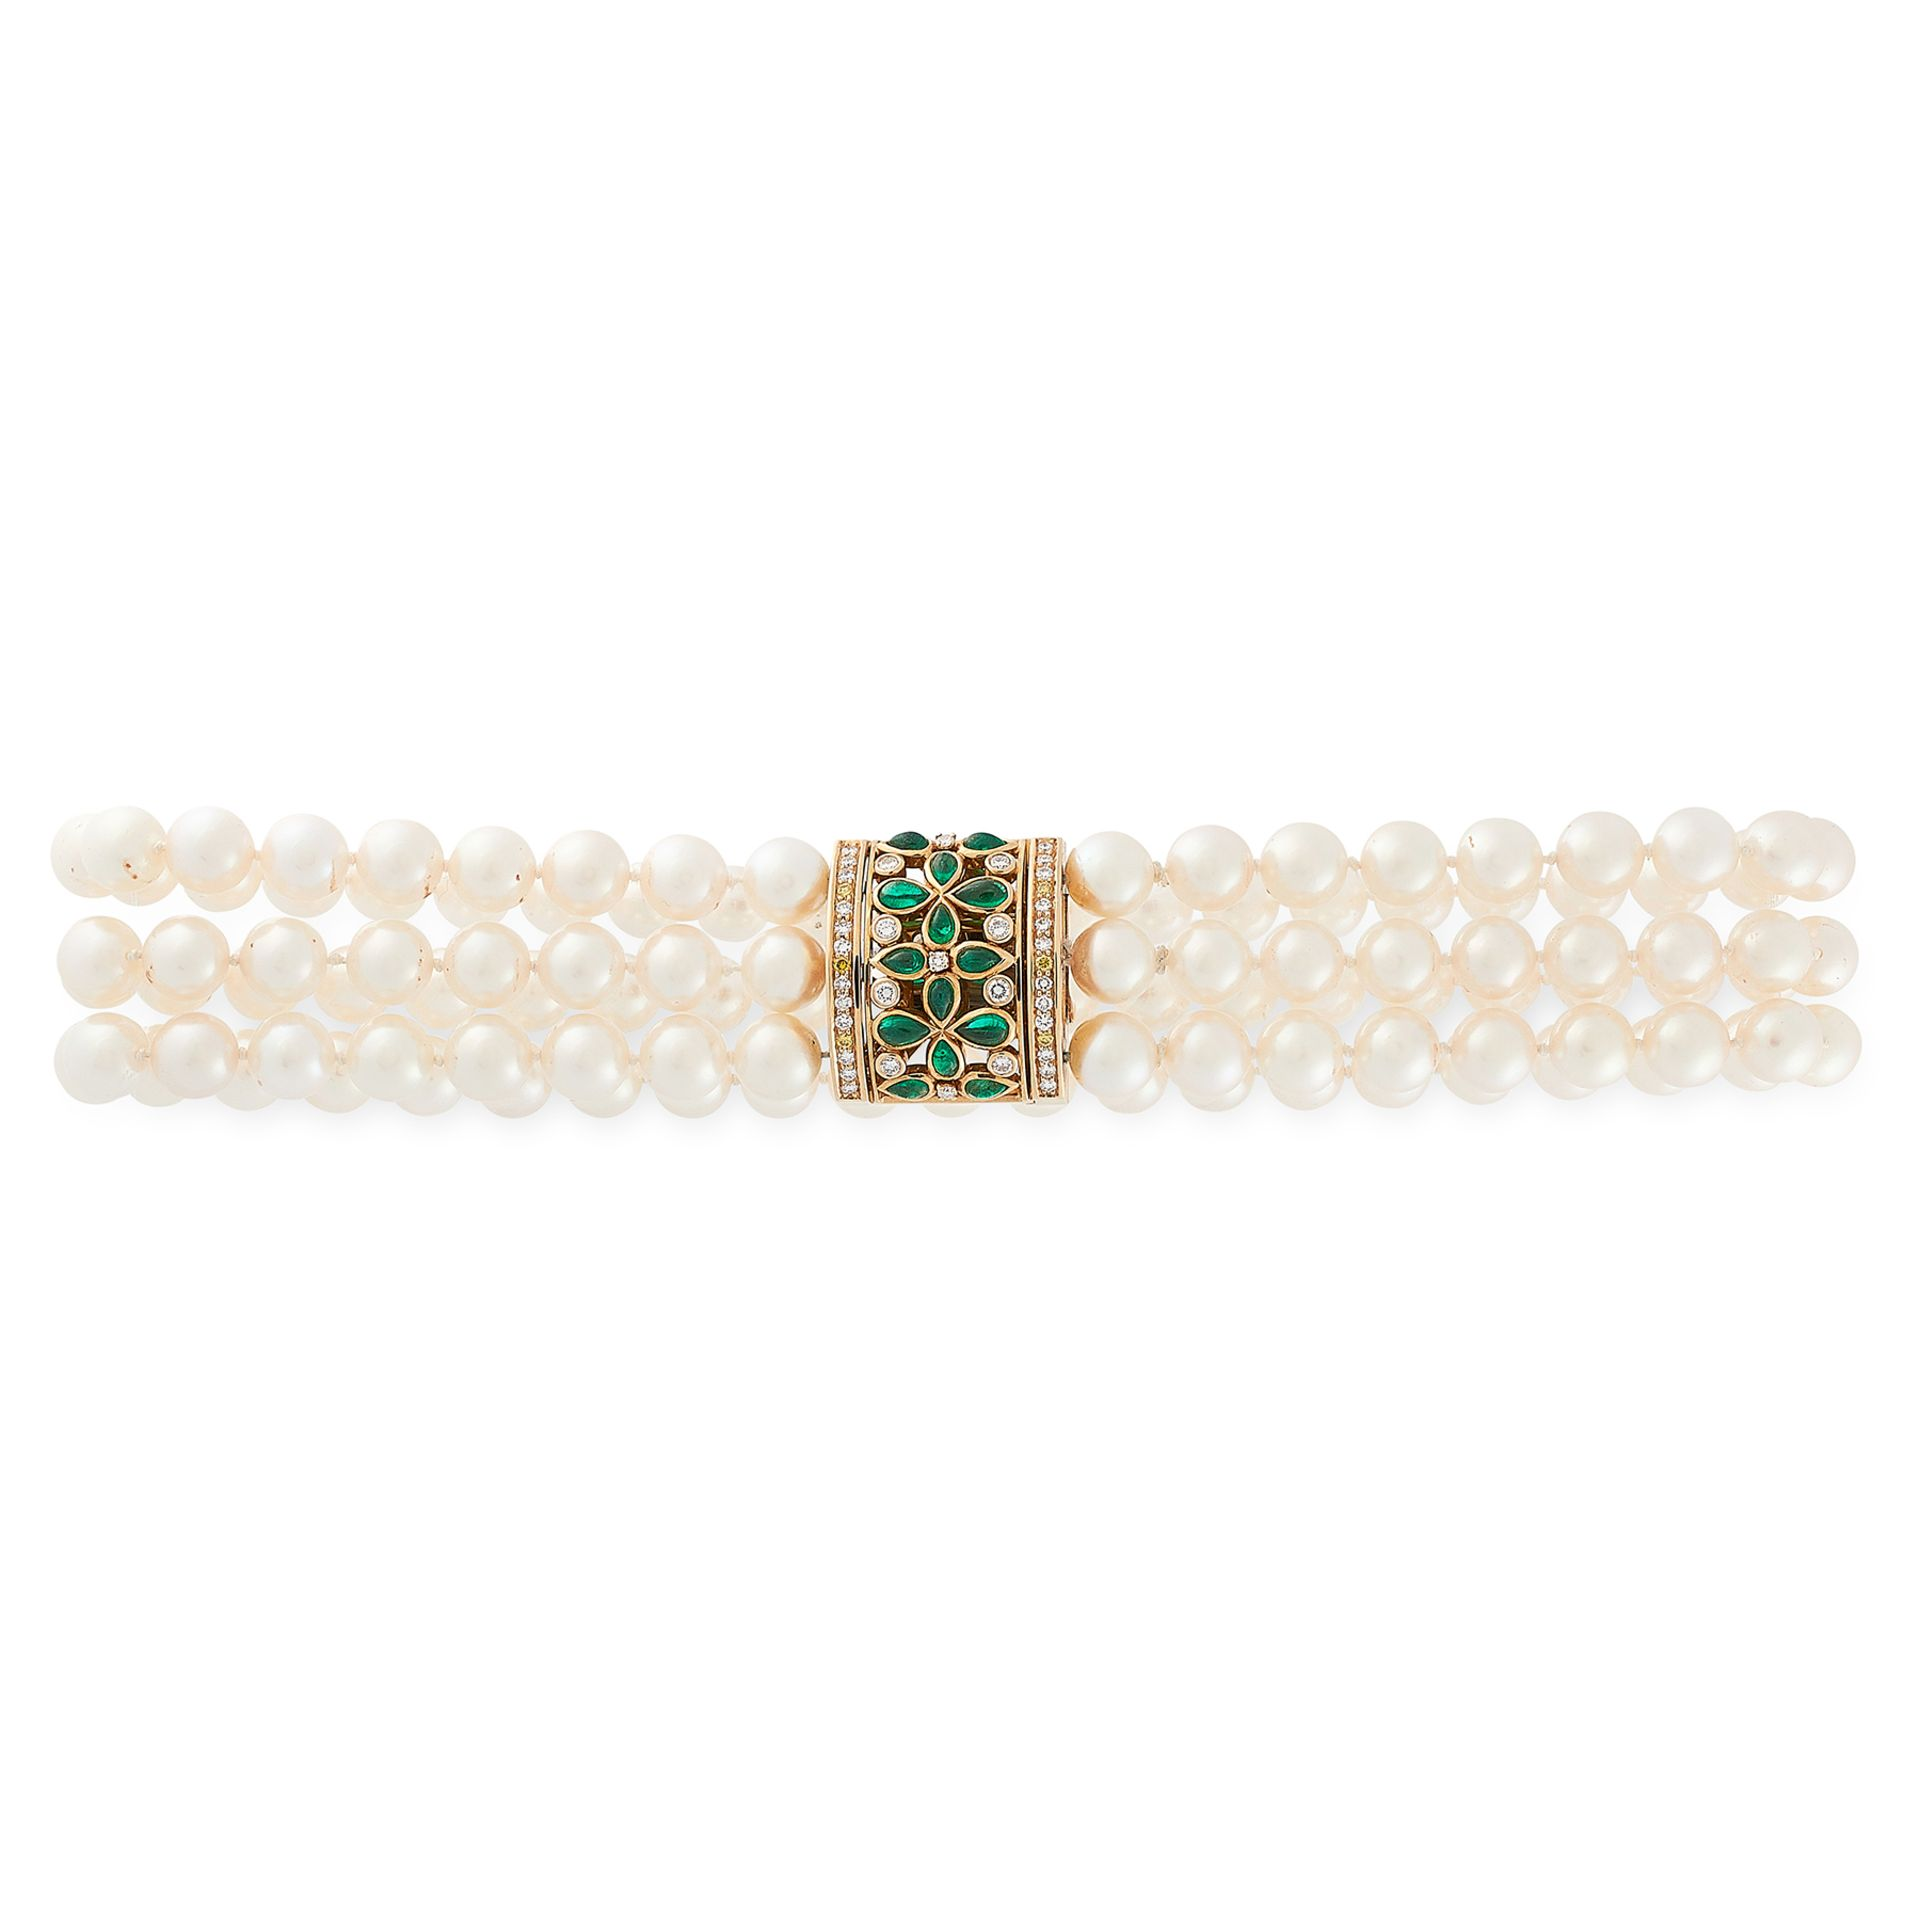 Los 53 - A PEARL, EMERALD AND DIAMOND CHOKER NECKLACE, CARTIER 1998 in 18ct yellow gold, comprising three